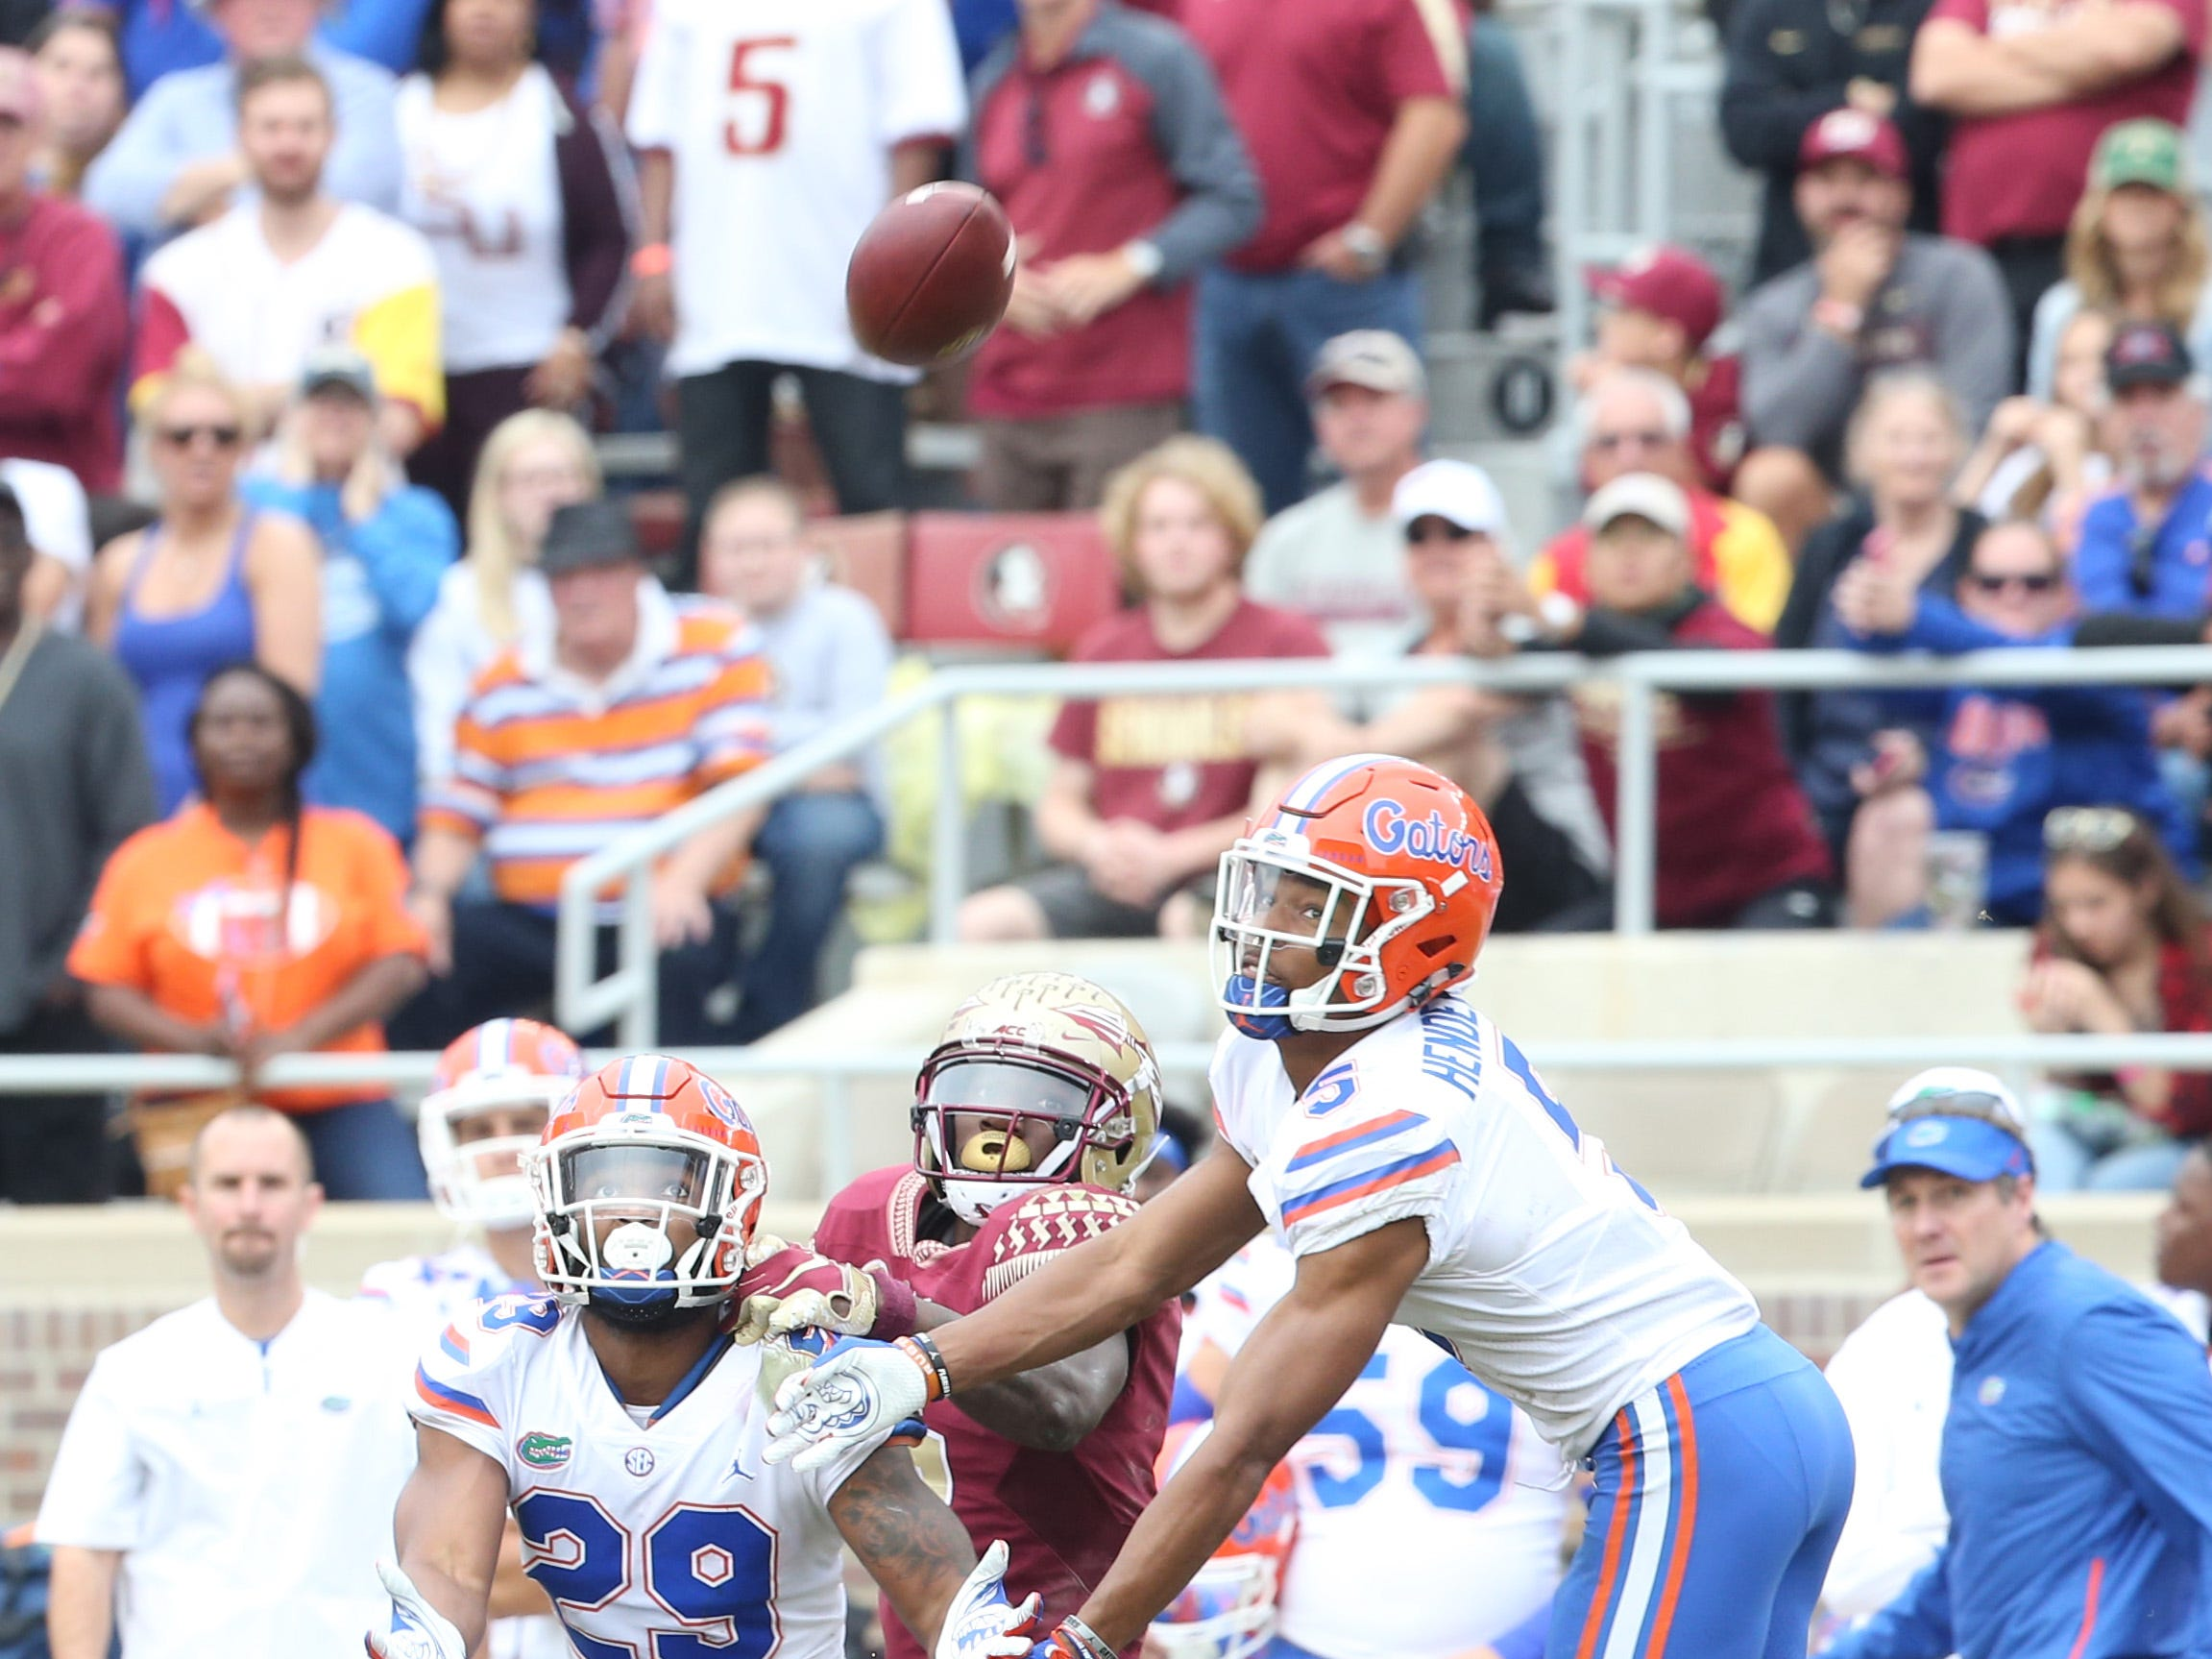 The Gators offense try to complete the pass as the Florida State Seminoles take on their rival the Florida Gators in college football at Doak S. Campbell Stadium, Saturday, Nov. 24, 2018.